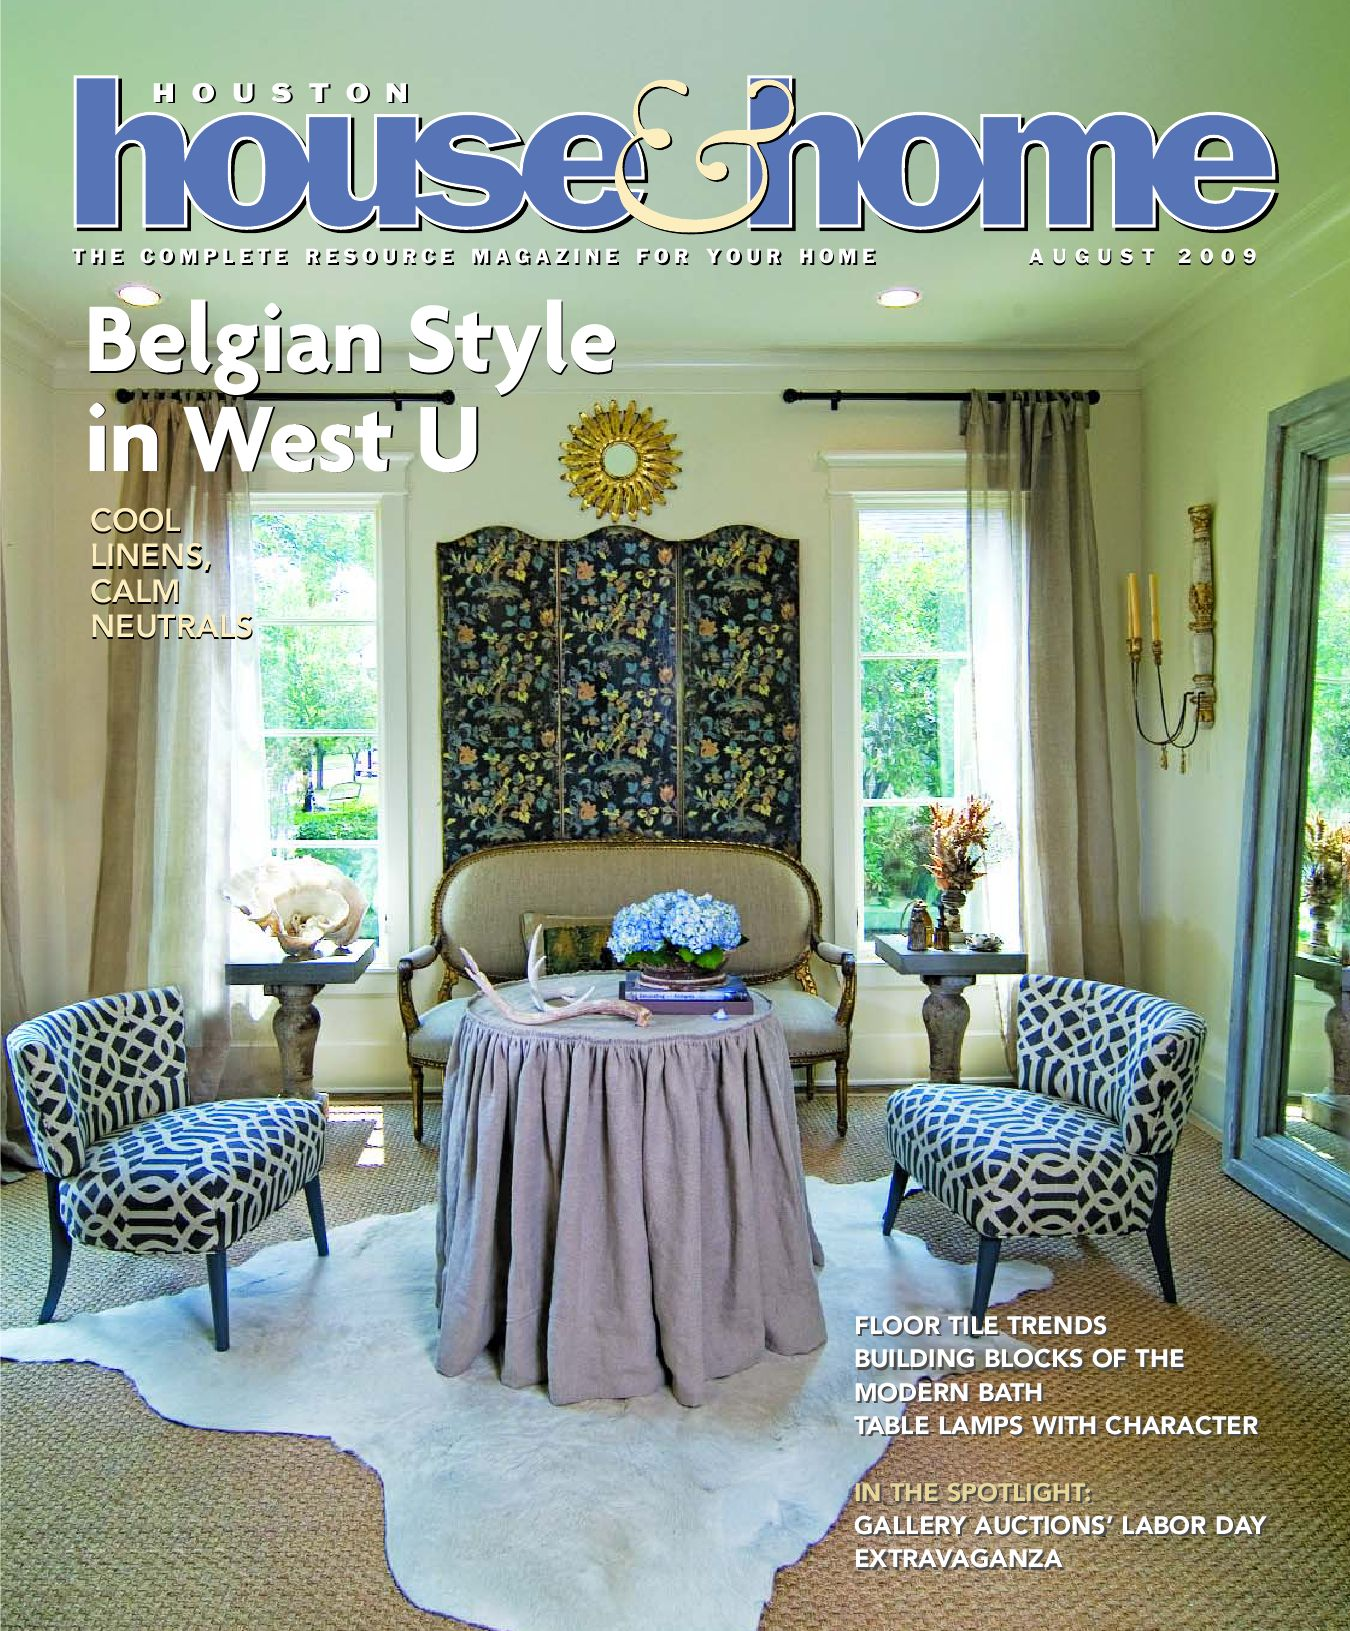 window designs casements more hgtv.htm houston house   home magazine august 2009 issue by houston house  august 2009 issue by houston house